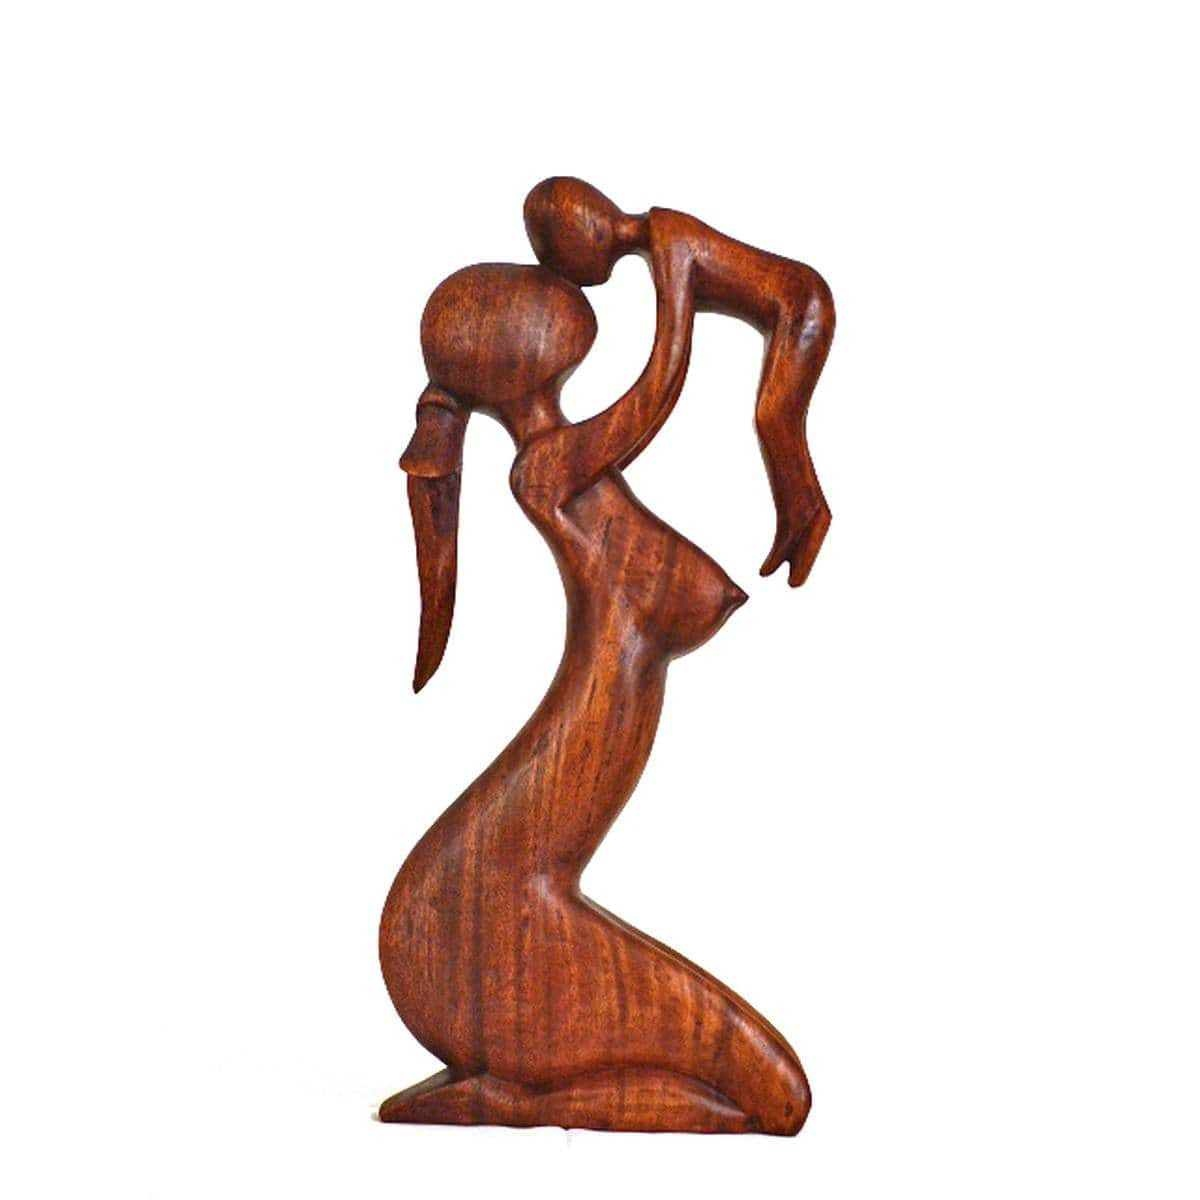 holz figur skulptur abstrakt holzfigur statue afrika asia handarbeit deko mutter. Black Bedroom Furniture Sets. Home Design Ideas